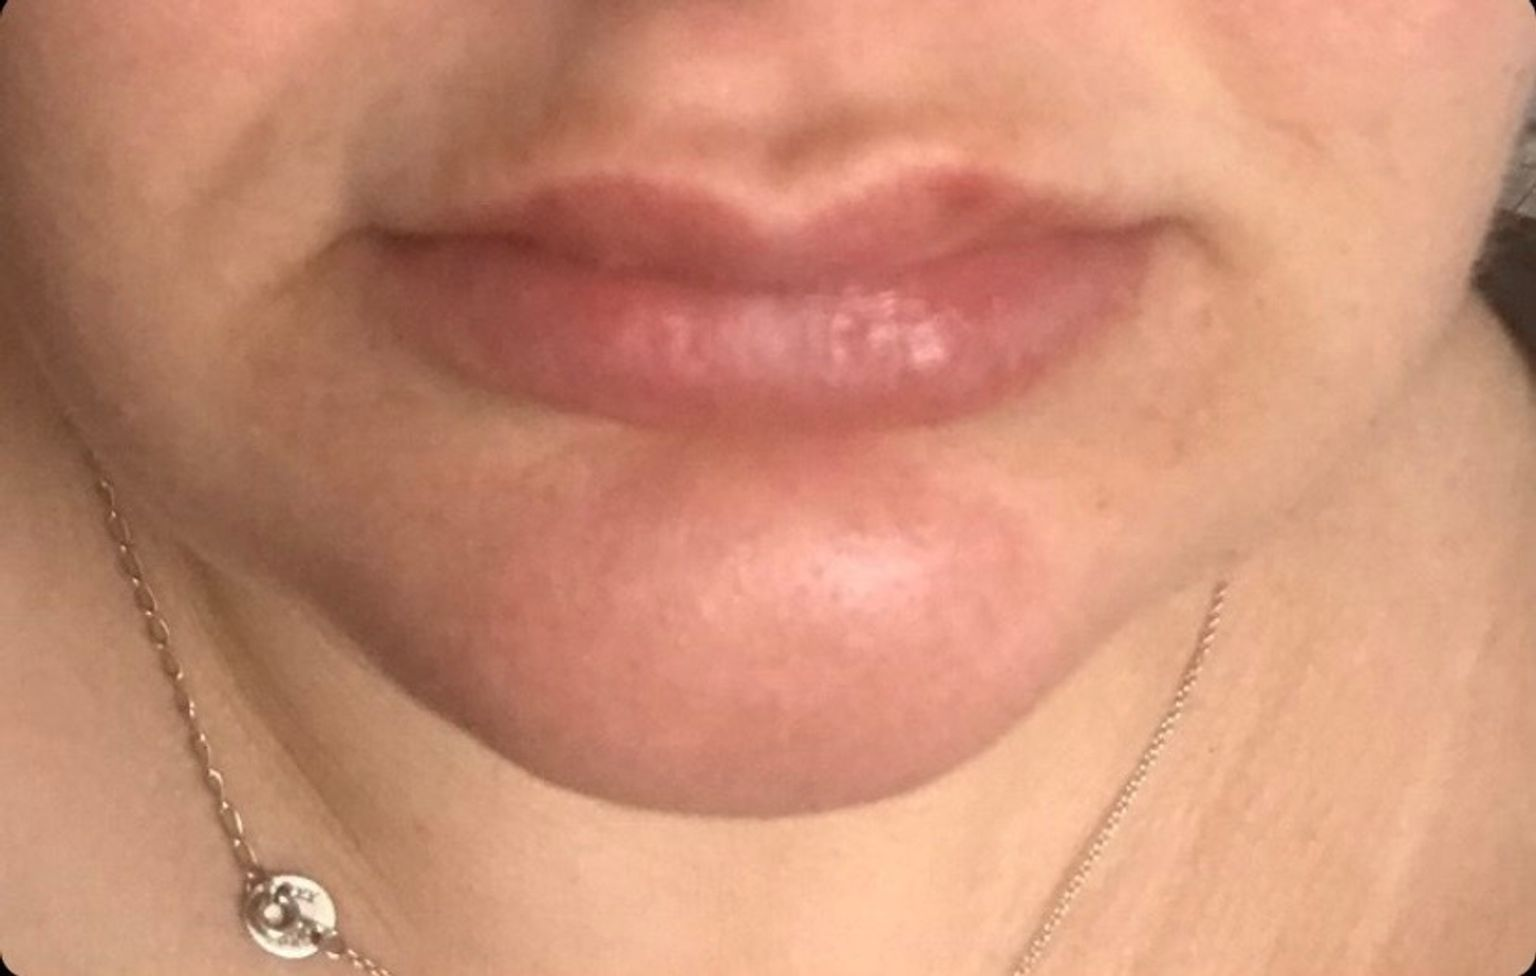 Her beautifully plump pout one week on